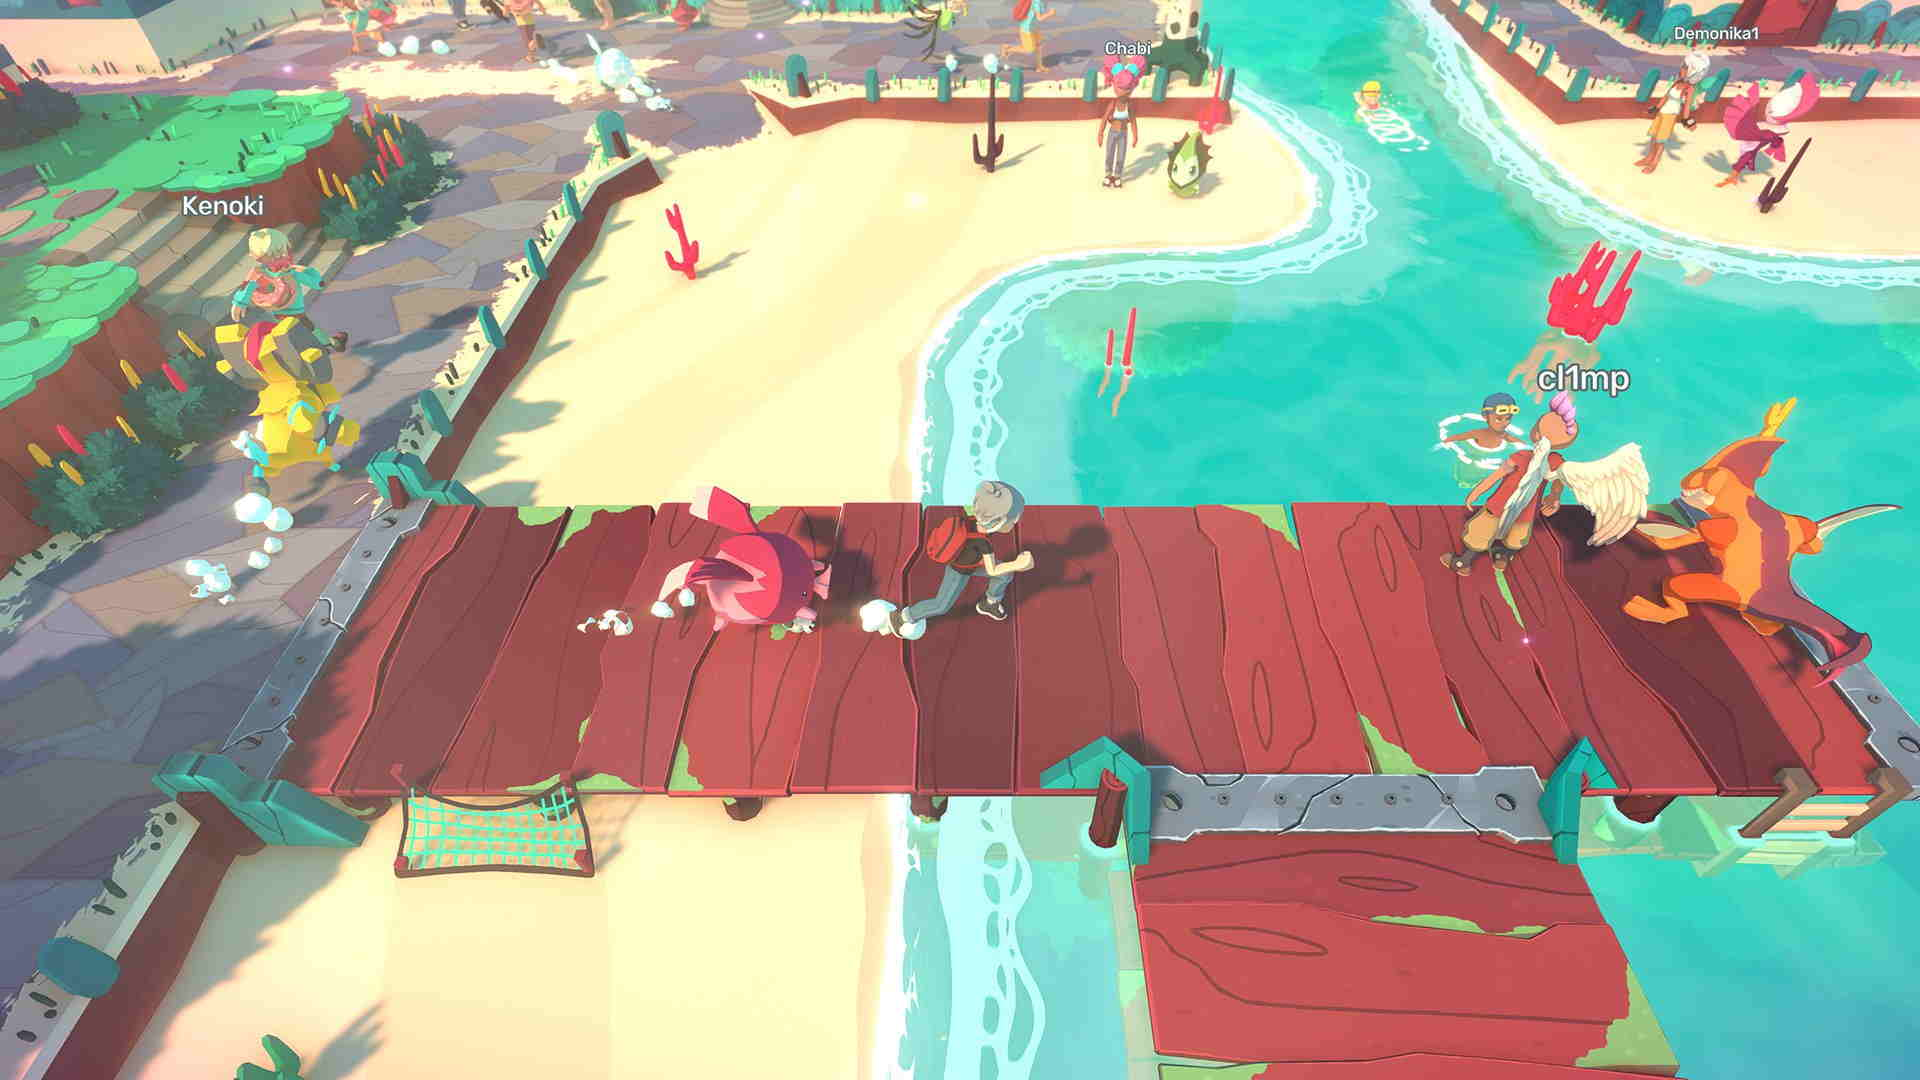 Temtem devs showcase game on Switch